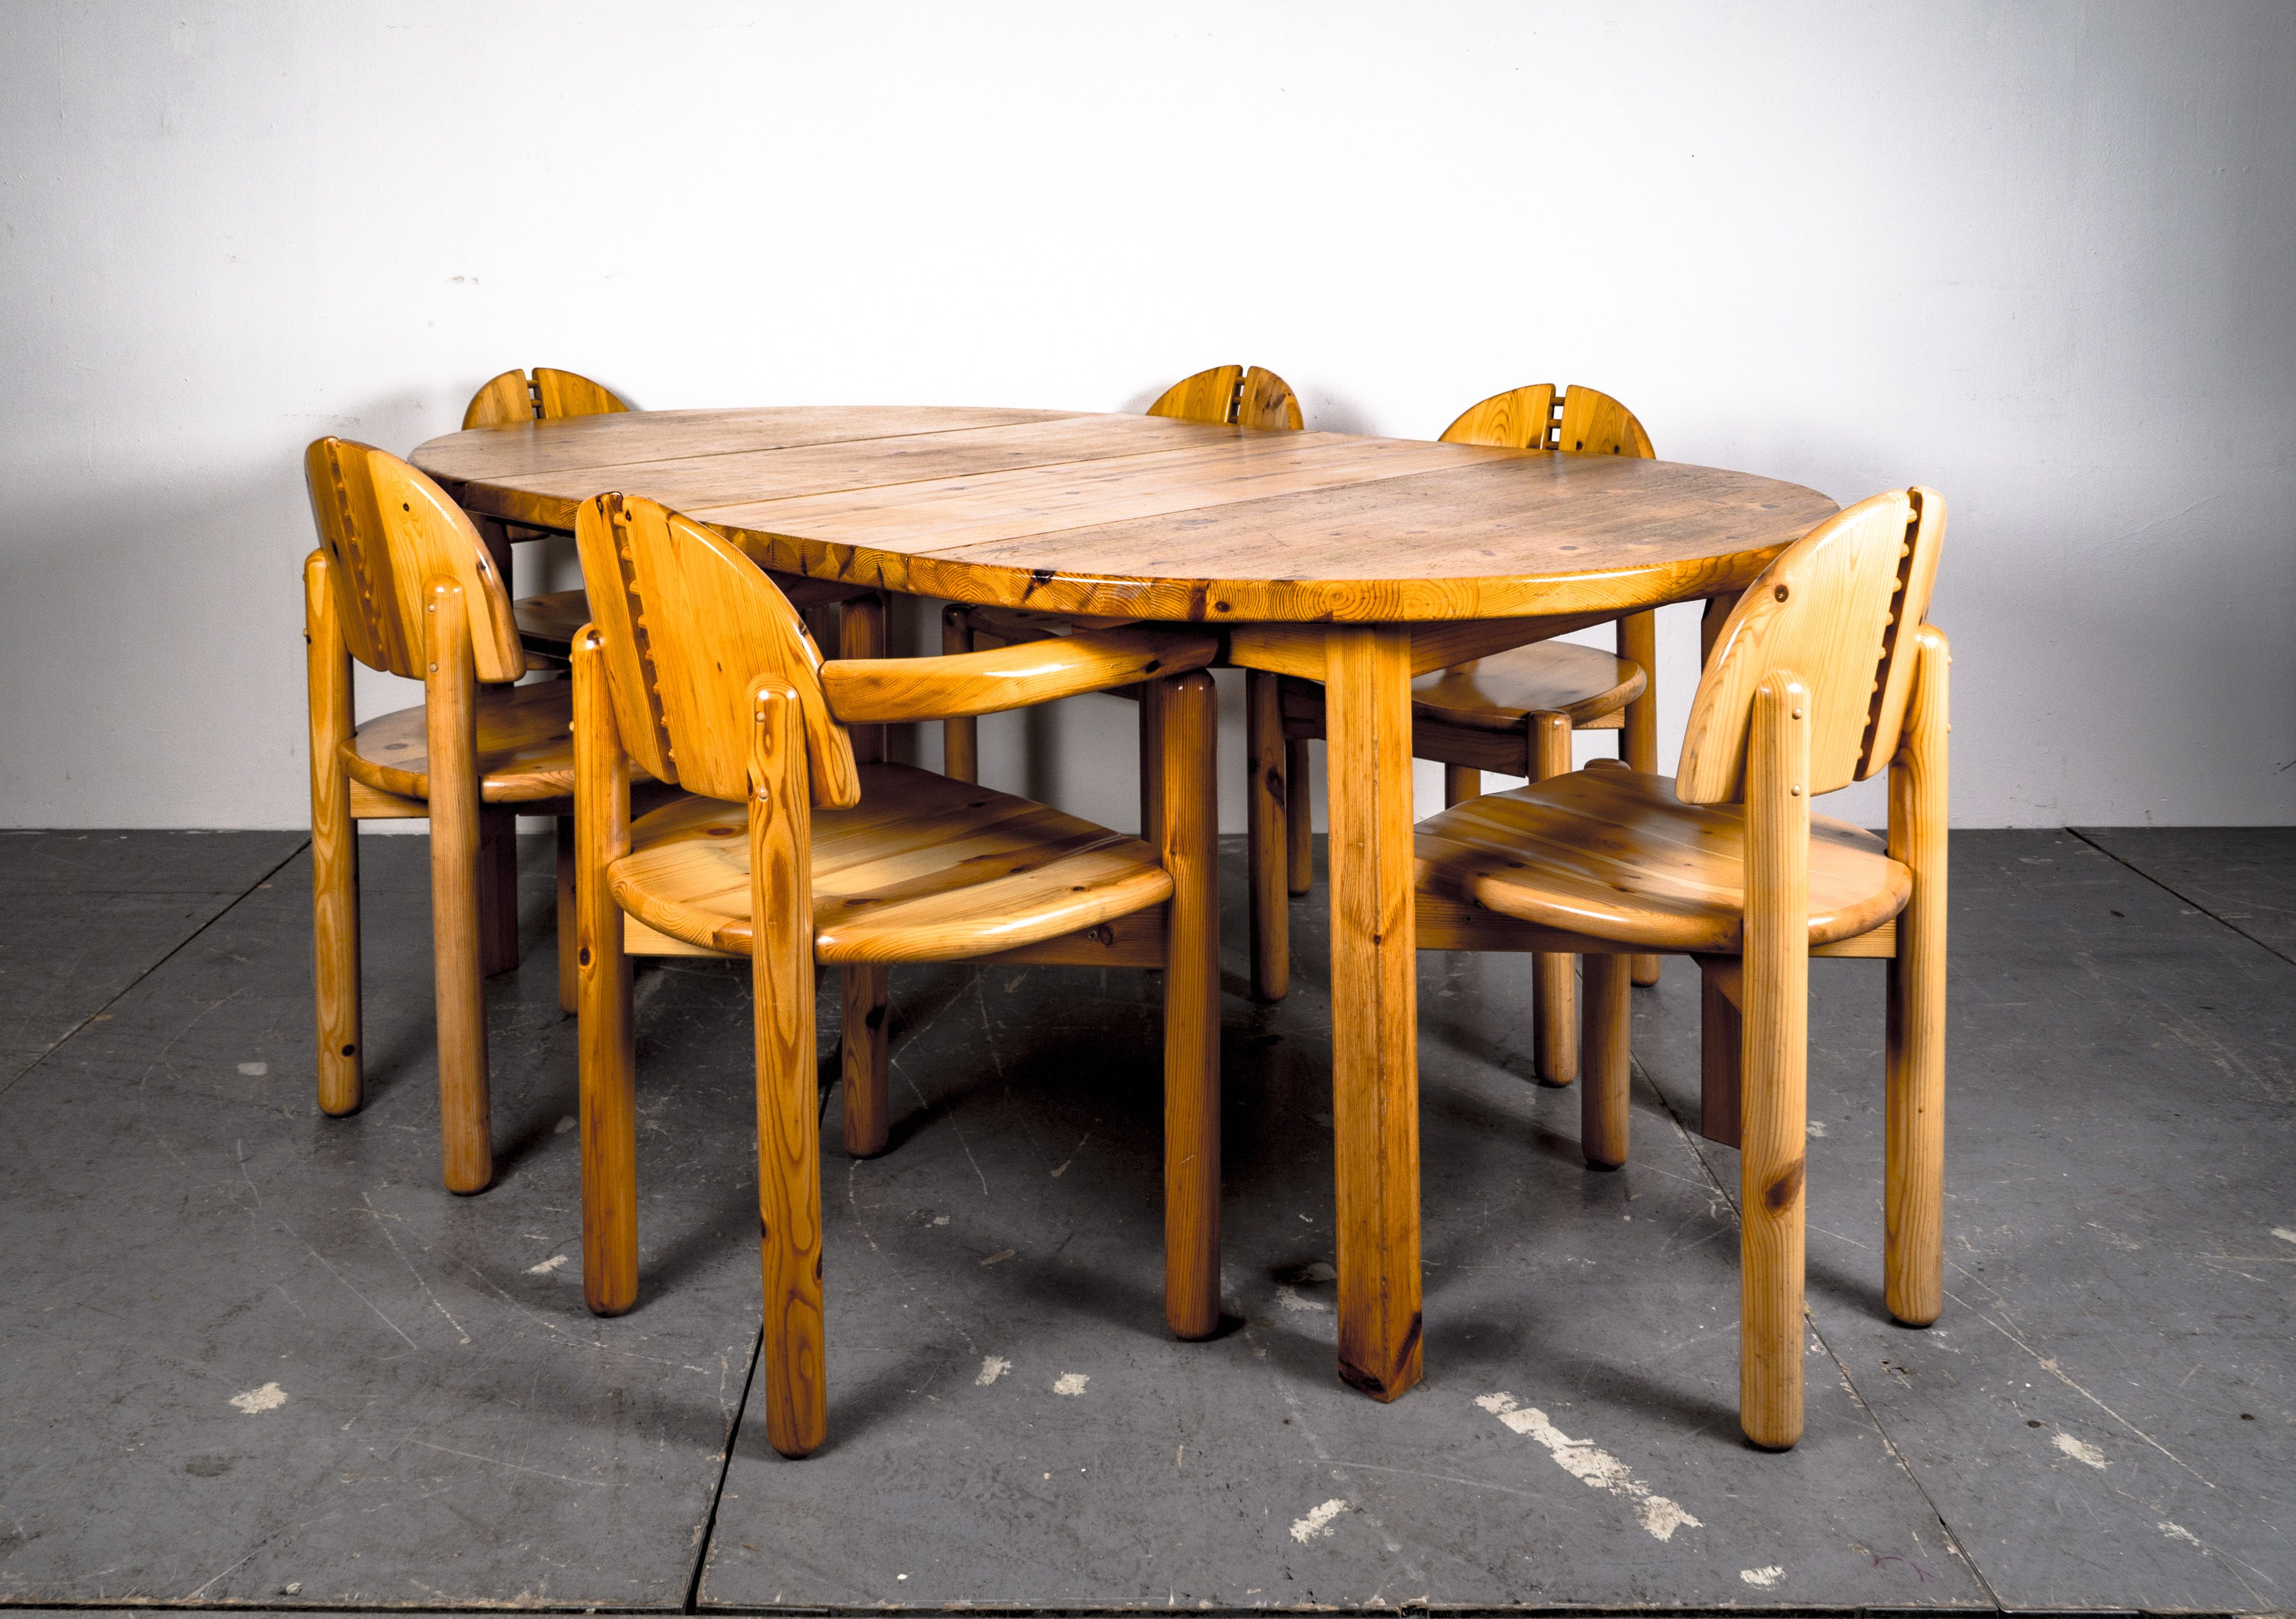 Danish Dining Table Chairs Set In Style Of Rainer Daumiller 1970er Danish Dining Table Dining Table Dining Table Chairs